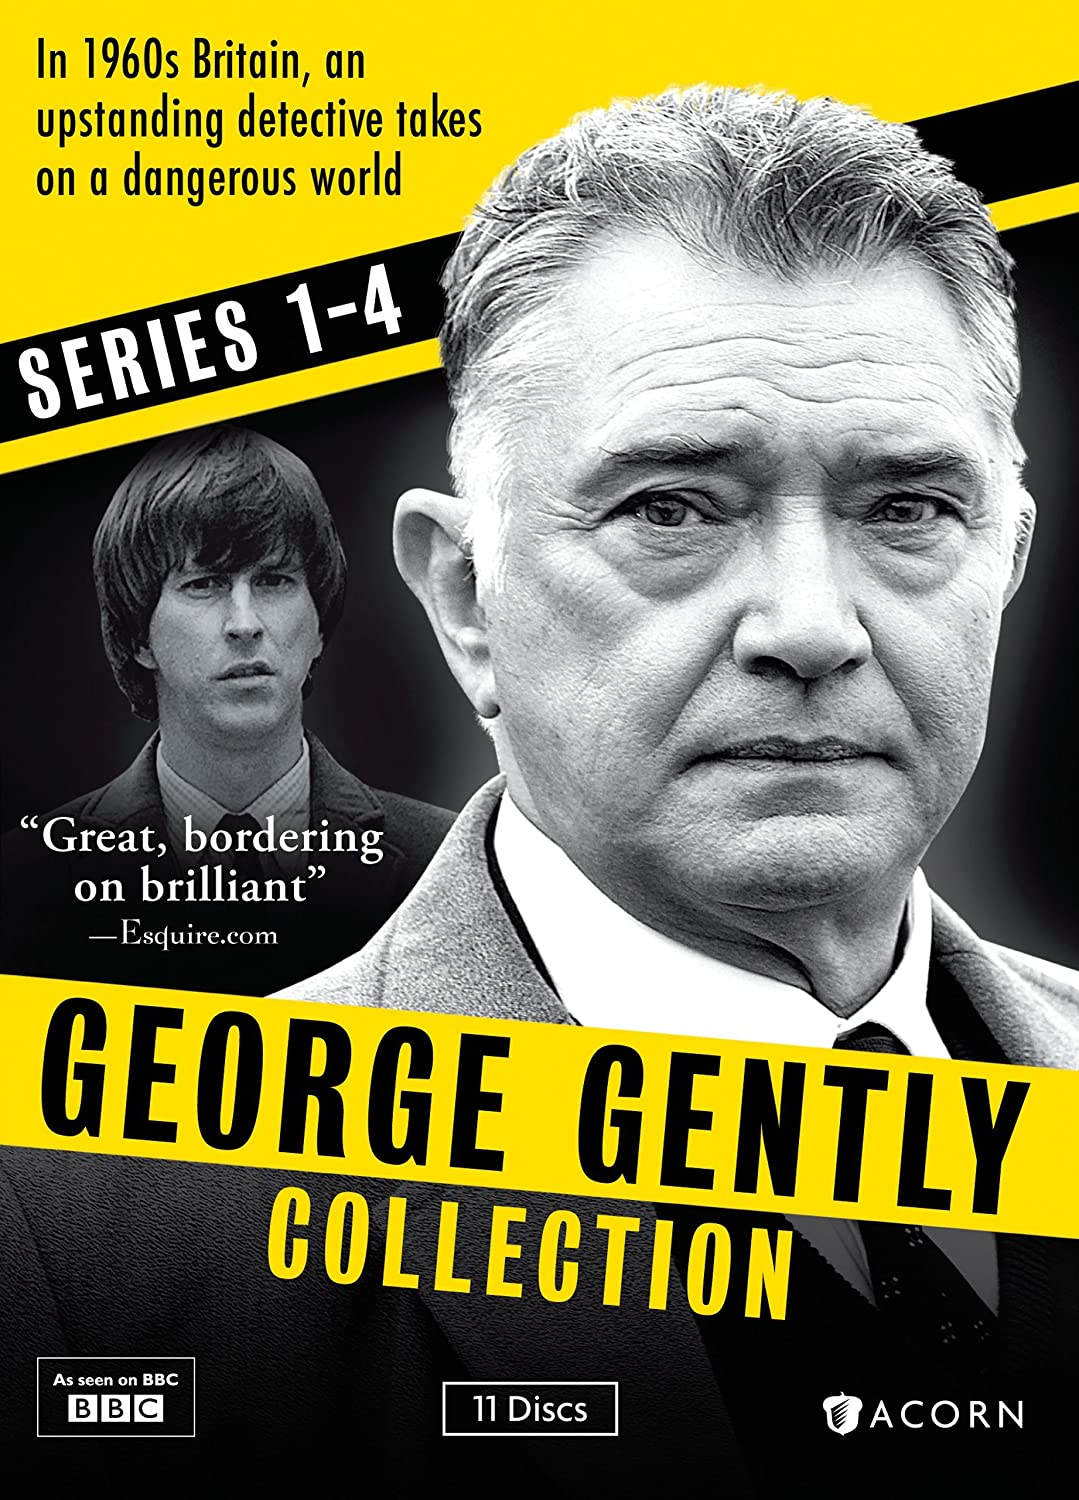 GEORGE Surprise price GENTLY COLLECTION: 1-4 SERIES Challenge the lowest price